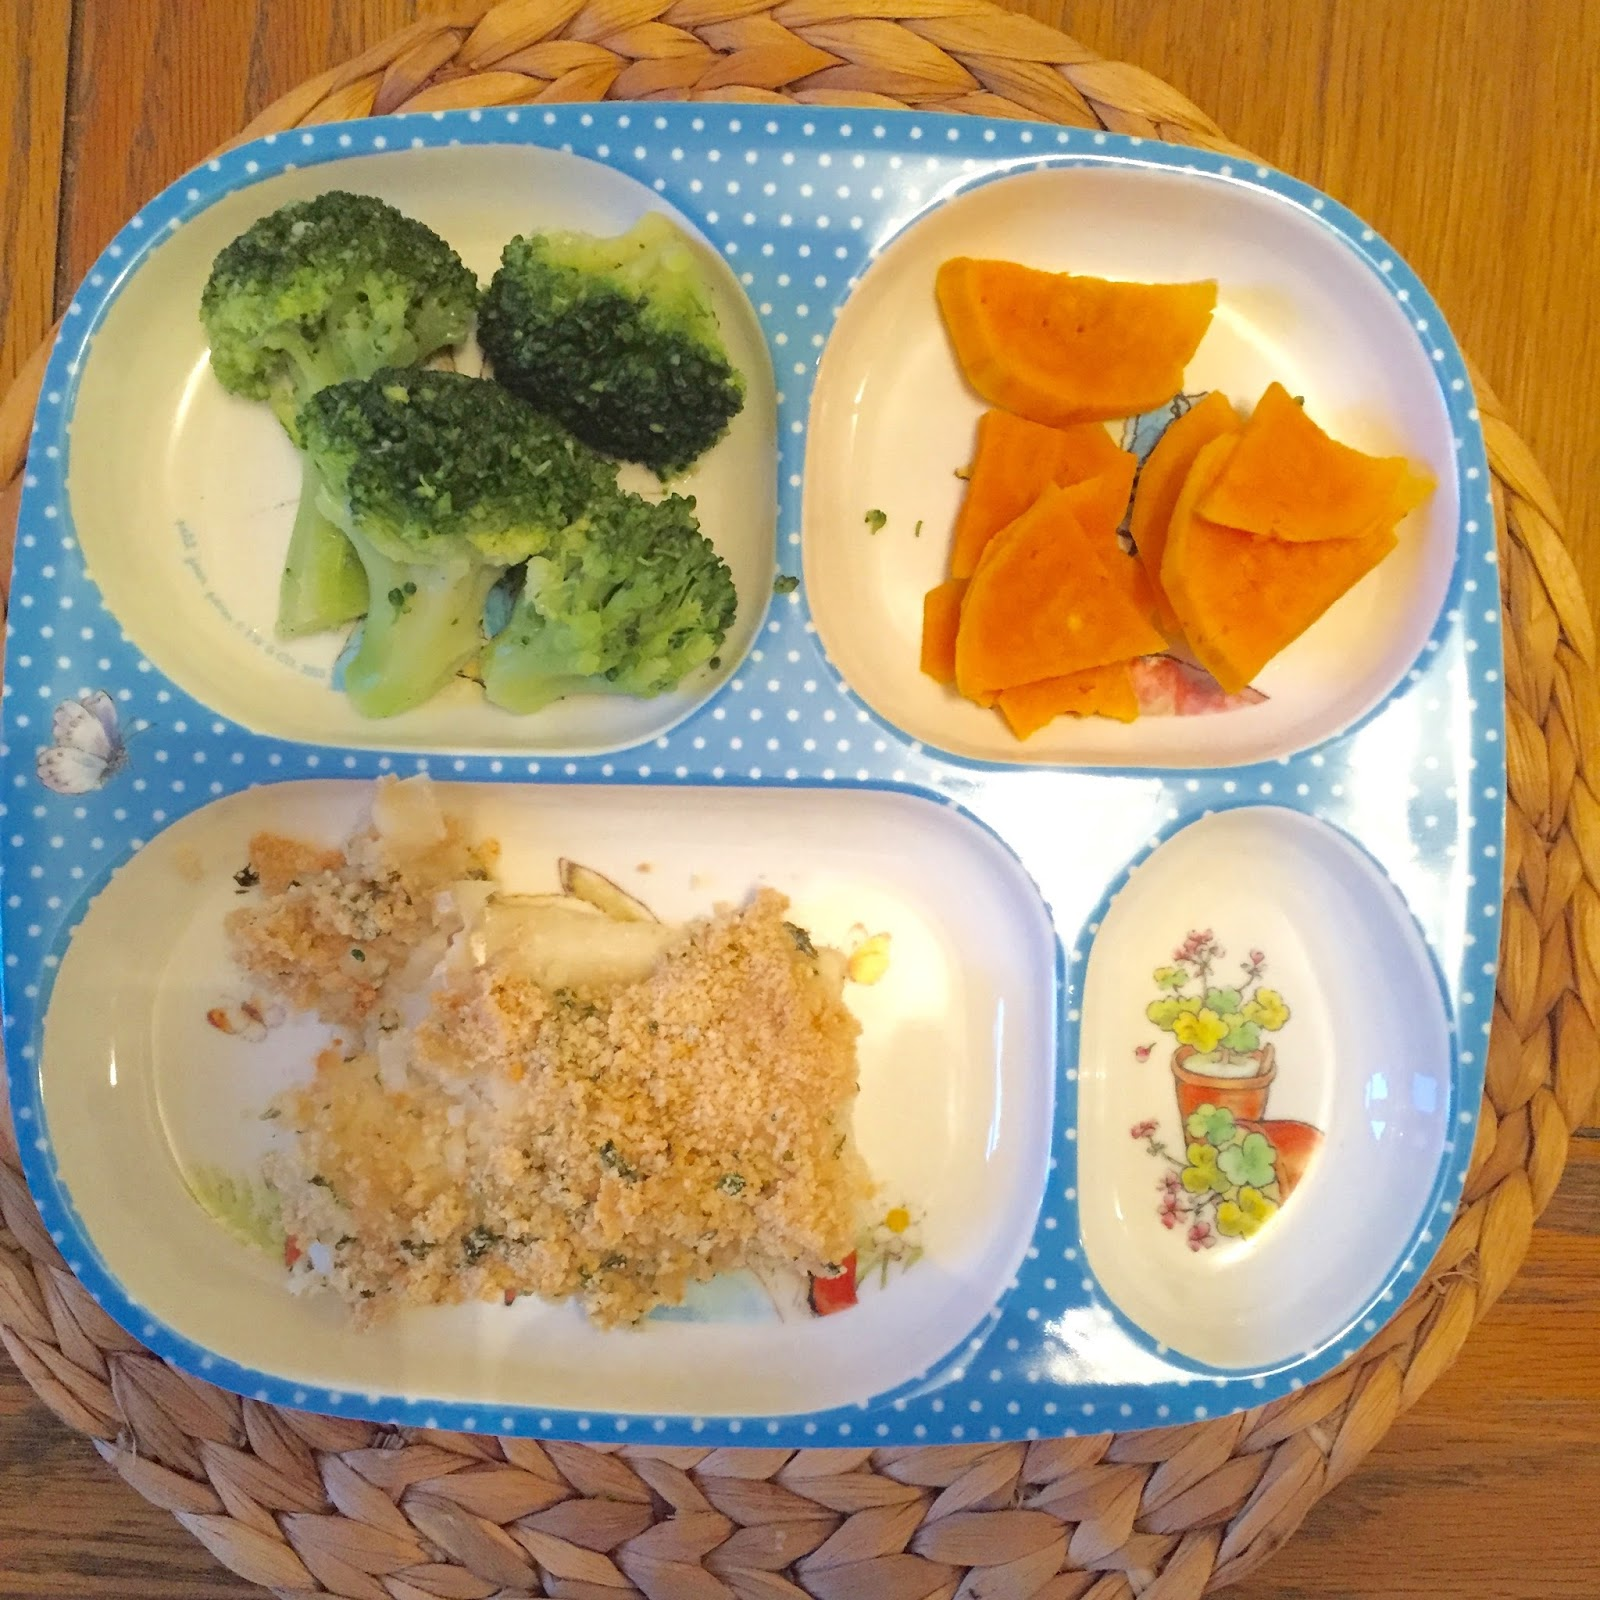 Healthy foods for 1 year old baby ltt a weeks worth of dinners for my 1 year old forumfinder Images